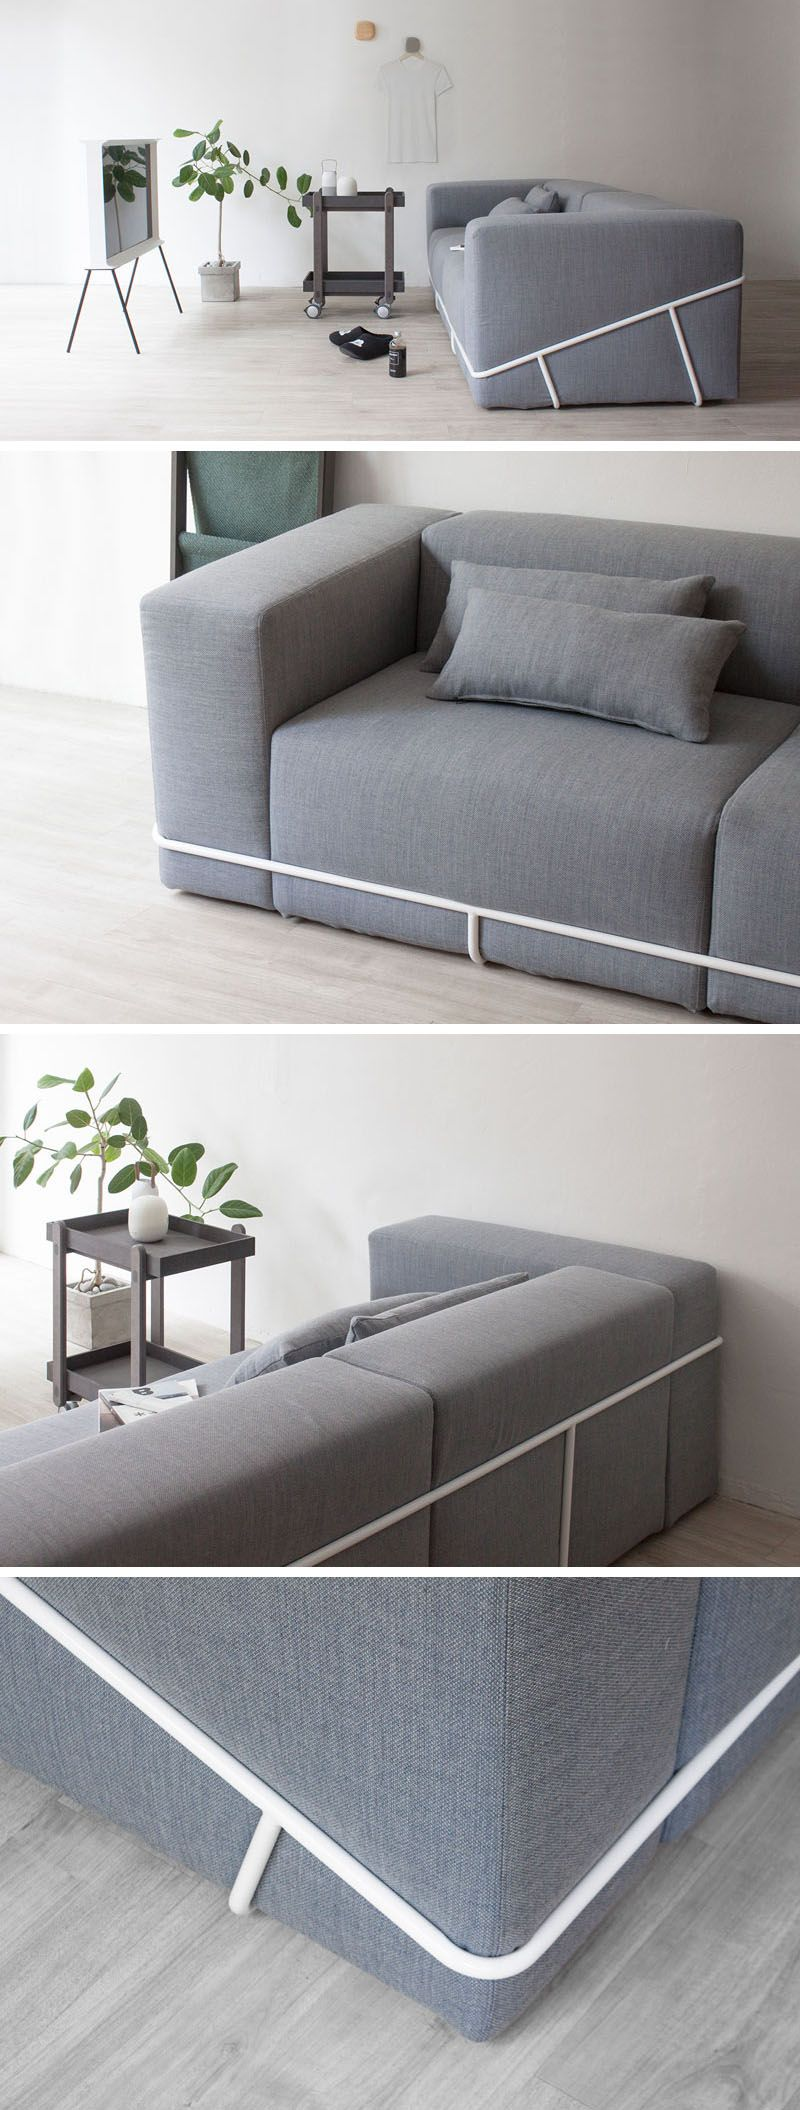 A Simple Metal Frame Contains The Six Cushions That Make Up This